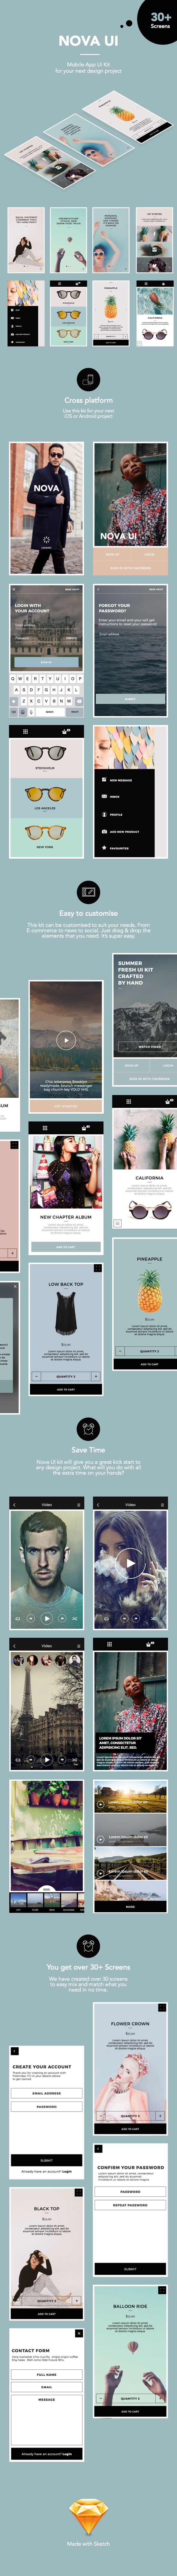 This beautiful Mobile App Ui Kit is perfect for your next design project. It is designed to be cross-platform so use this kit for your next iOS or Android project. This kit can be customised to...